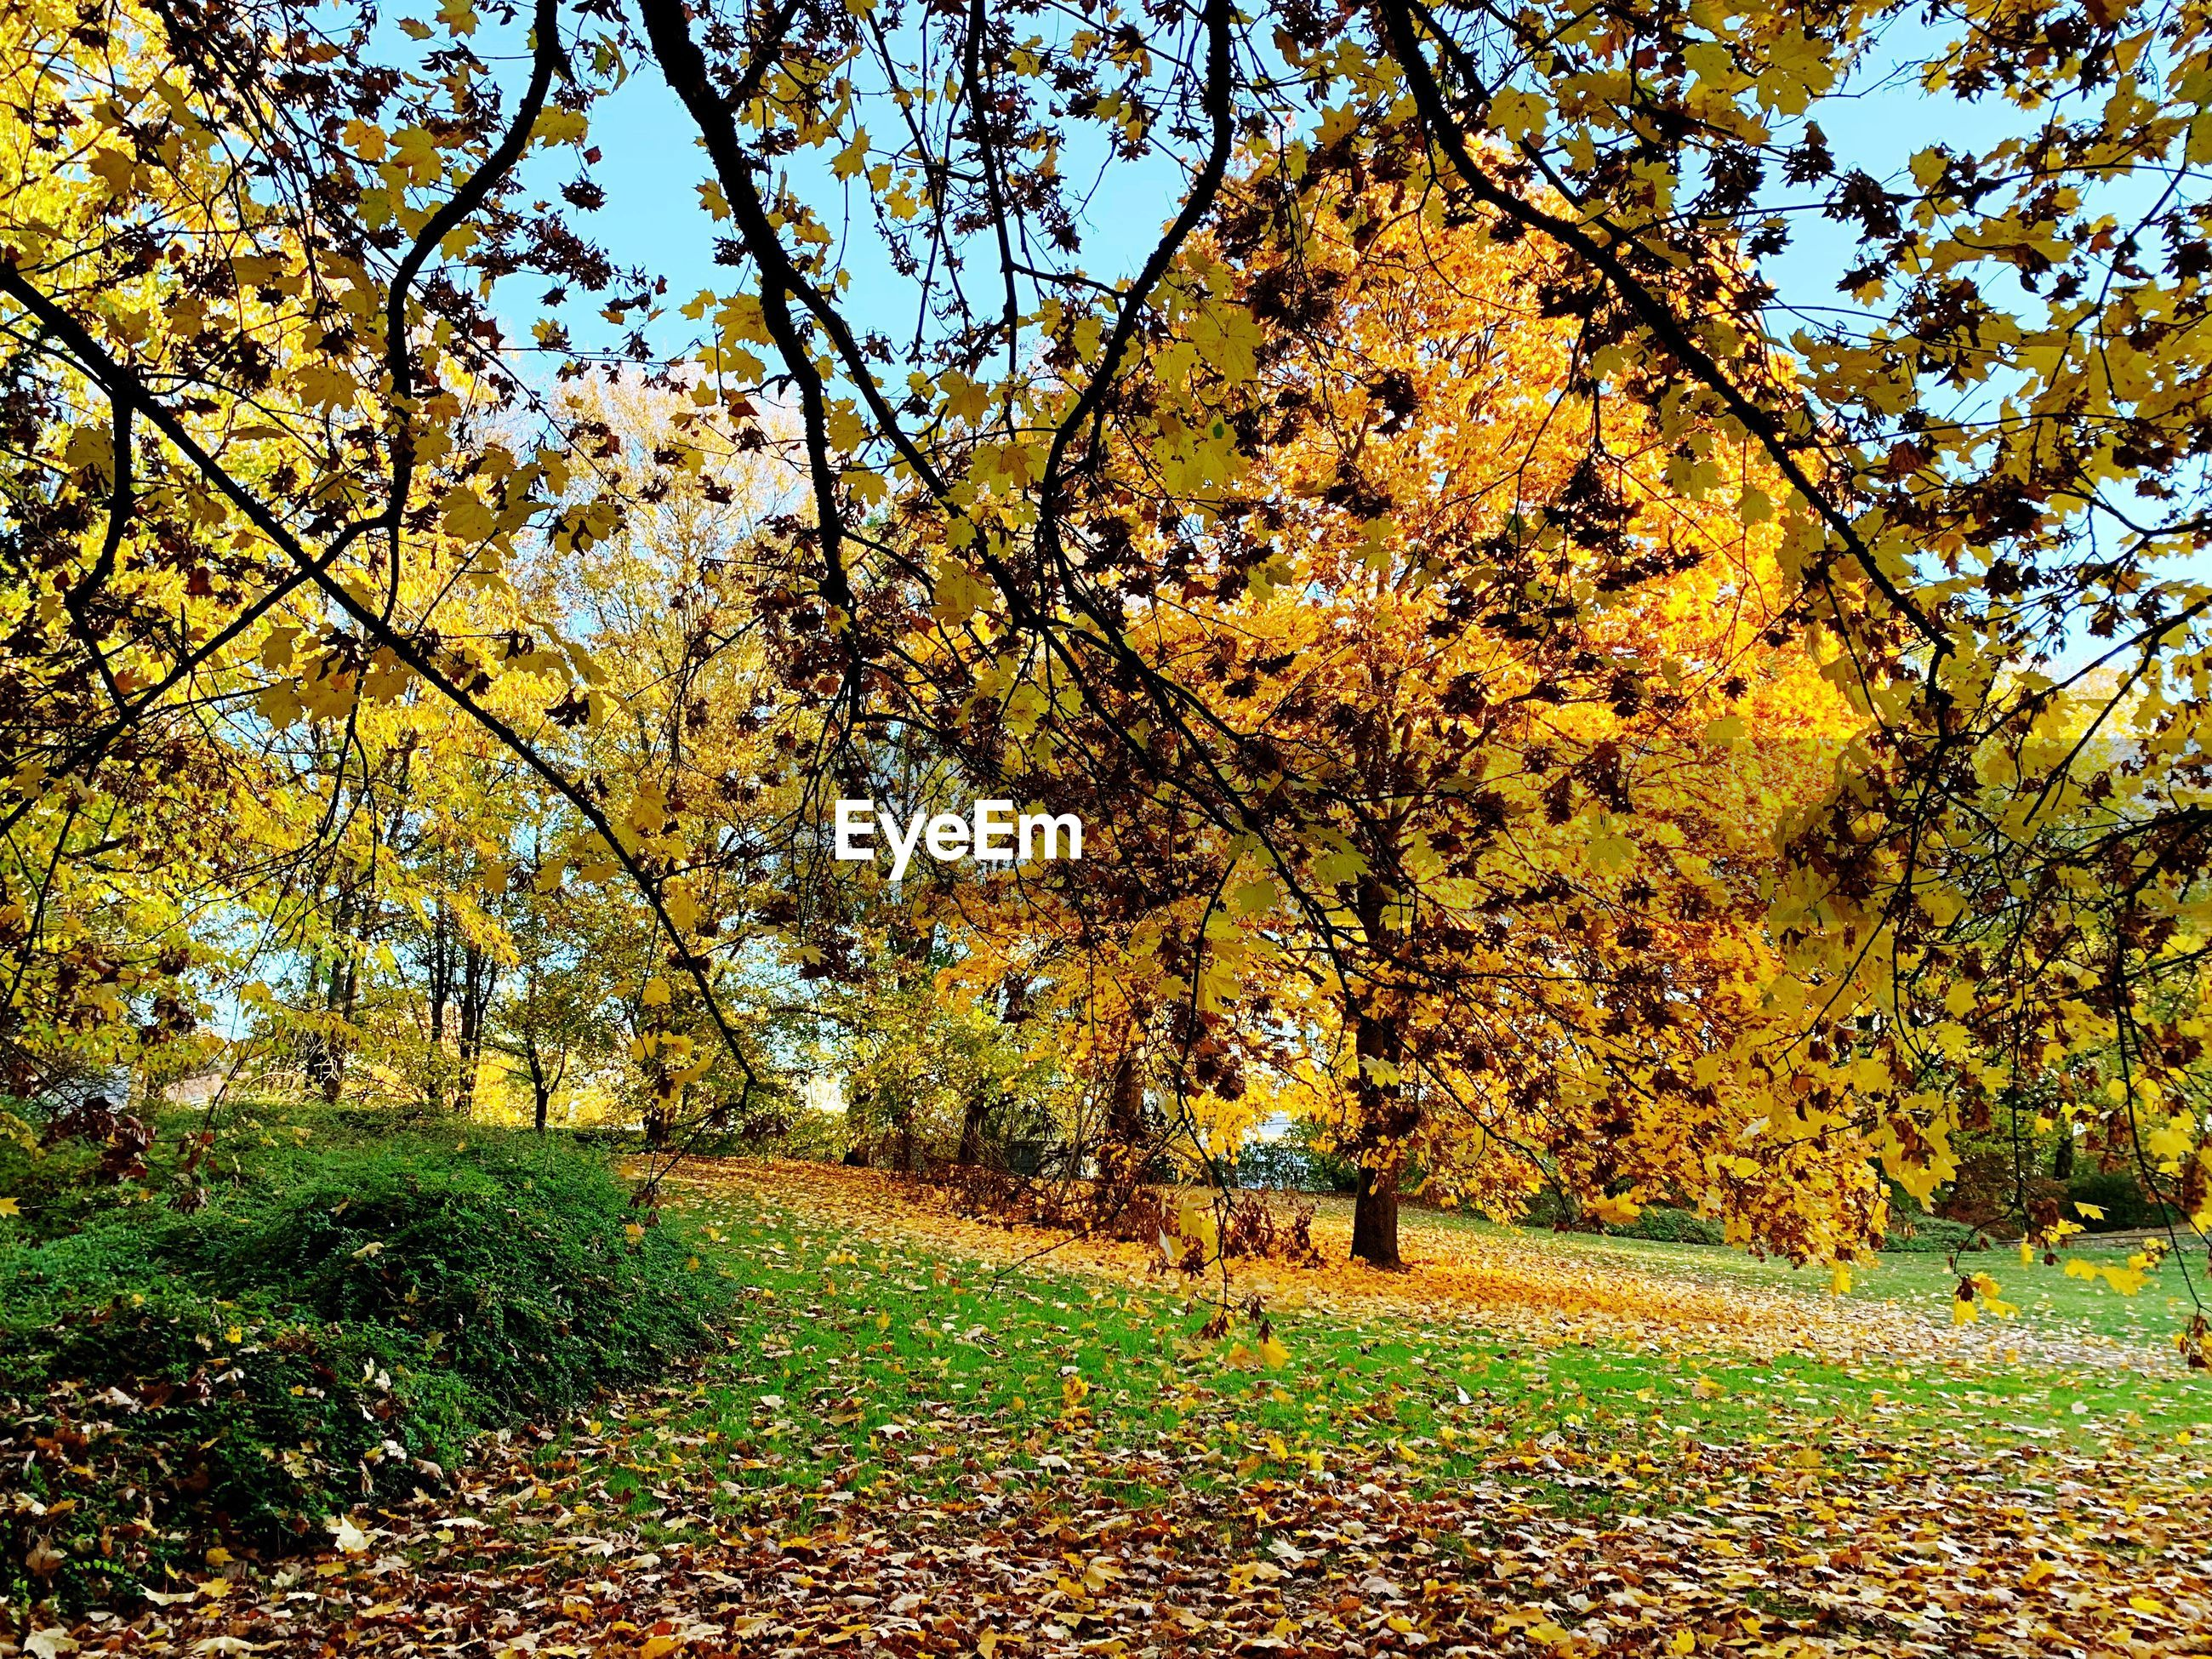 TREES AND PLANTS ON FIELD DURING AUTUMN